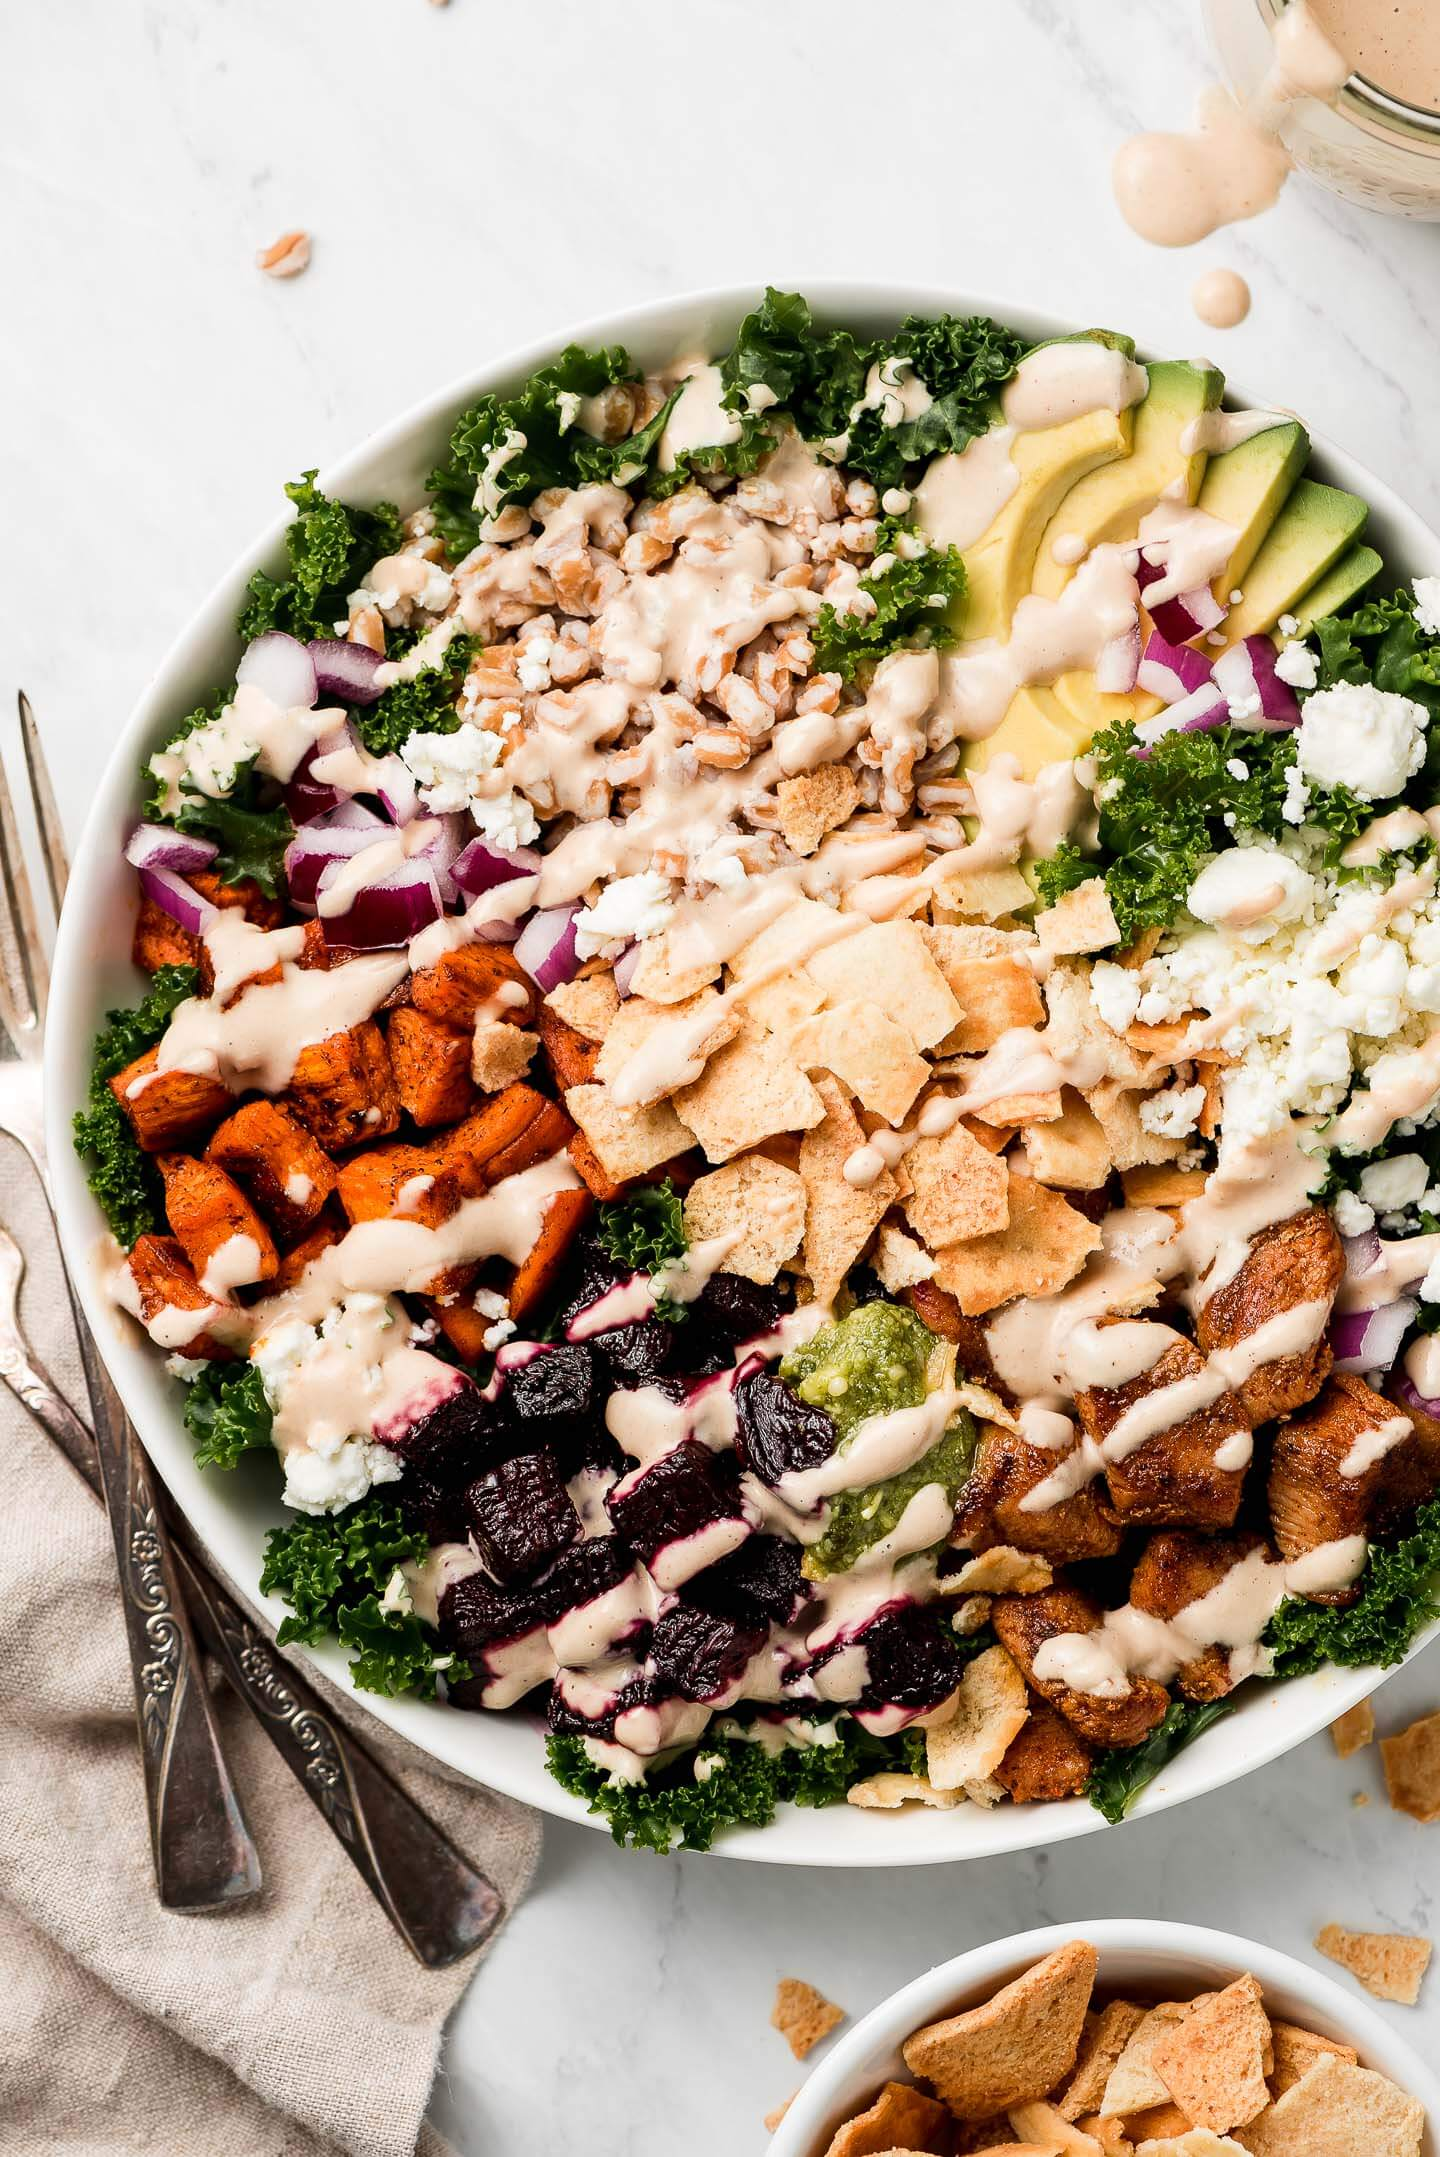 A kale salad with vegetables, chicken, farro, cheese, and avocado drizzled with tahini dressing.